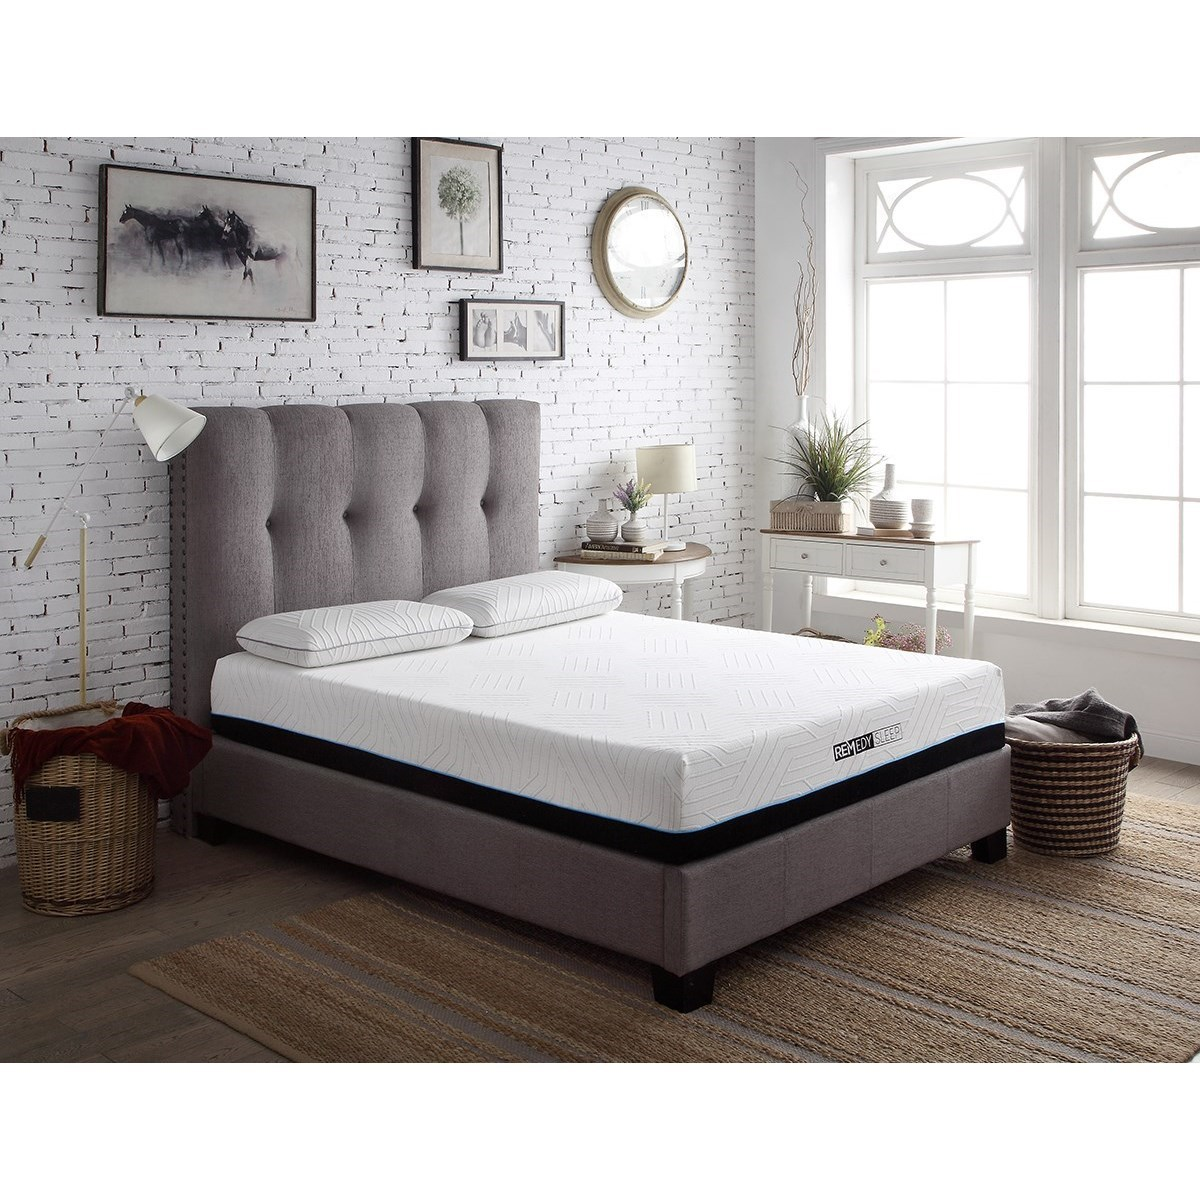 Tufted Nailhead Beds Queen Upholstered Bed